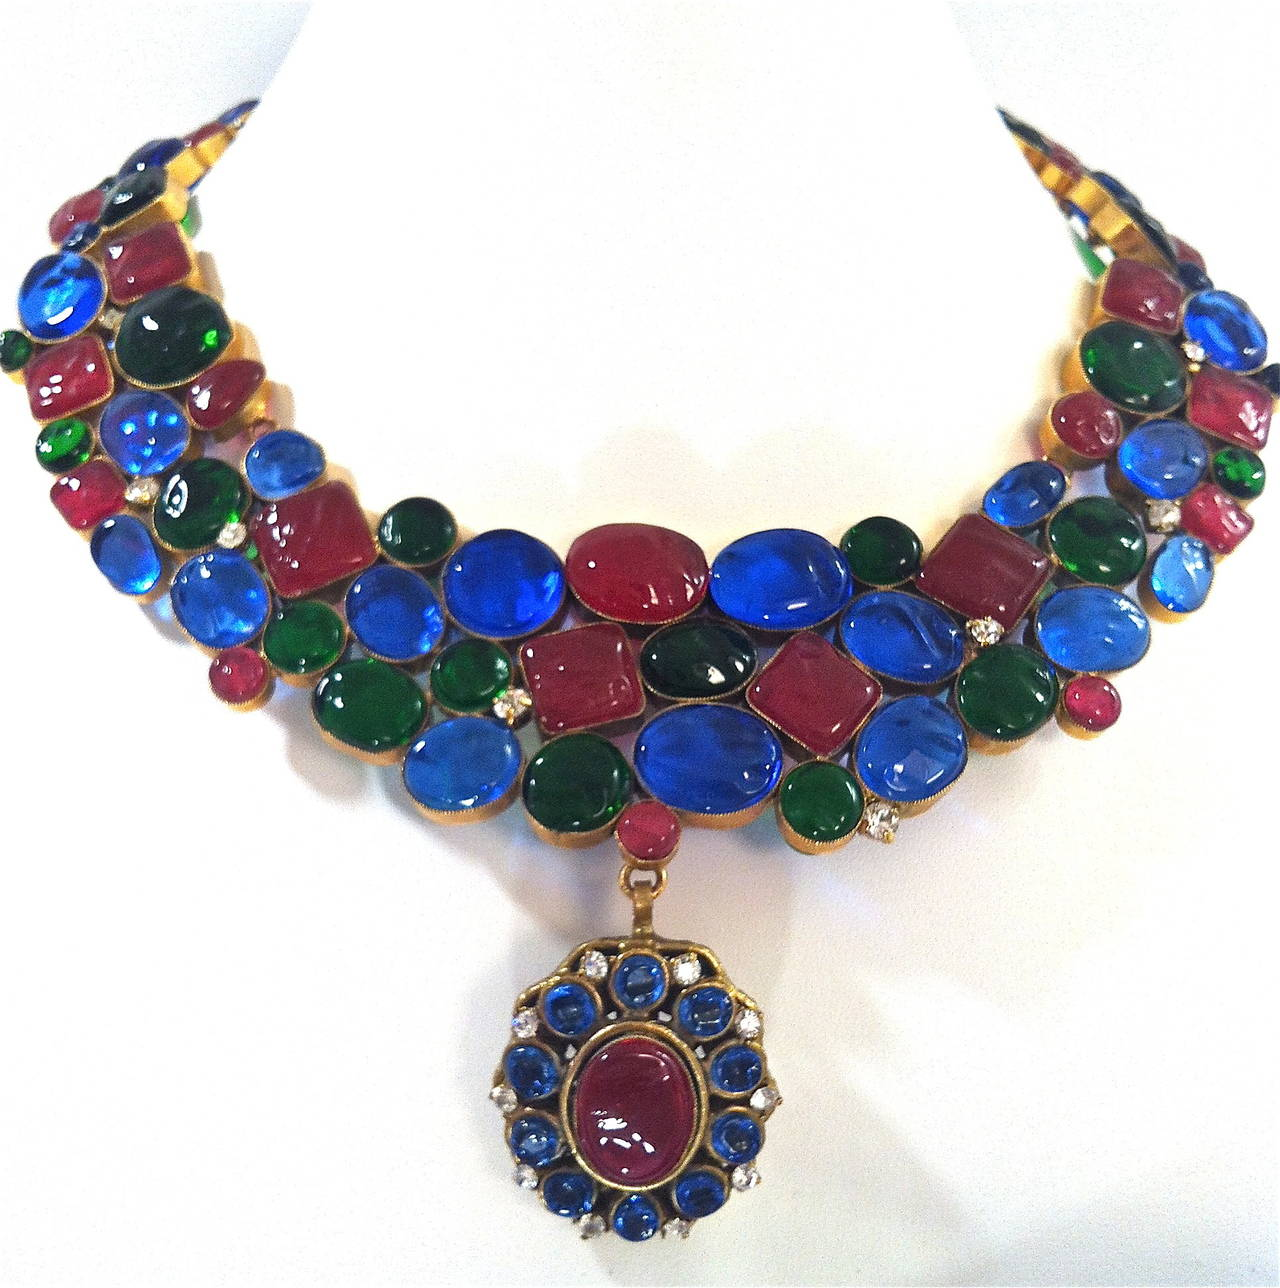 Made for Chanel, an exceptional open back Gripoix poured glass necklace consisting of 11 articulated segments, set with 89 poured glass cabochons framed in thin brass rings, imitating ruby, sapphire and emerald gems in the Byzantine style so loved